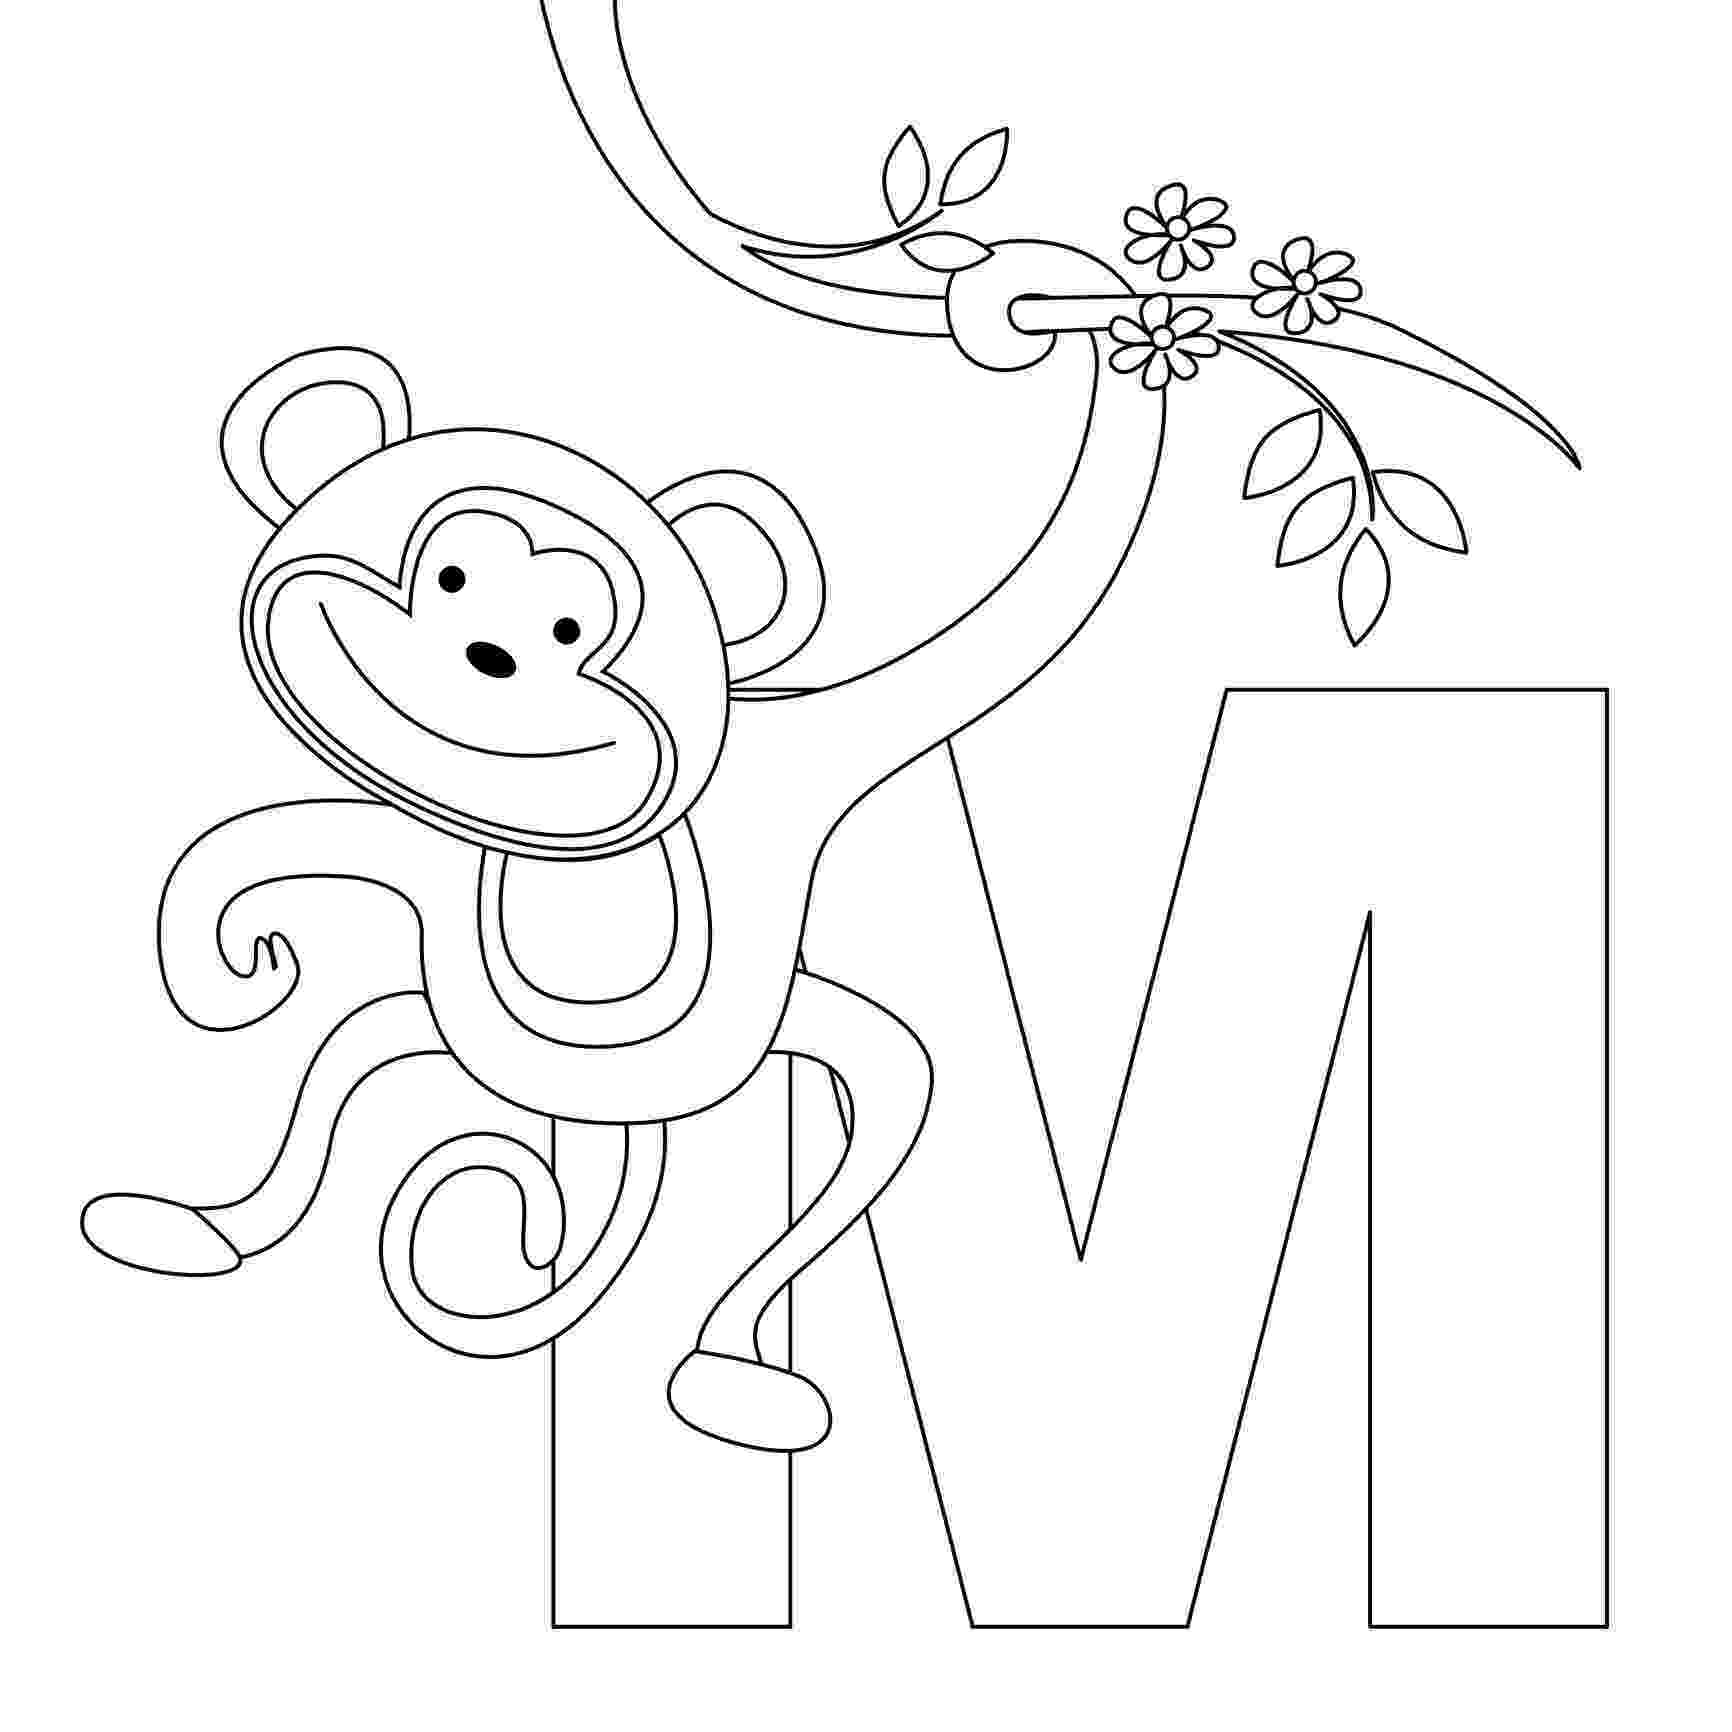 printable coloring alphabet letters free printable alphabet coloring pages for kids best coloring printable letters alphabet